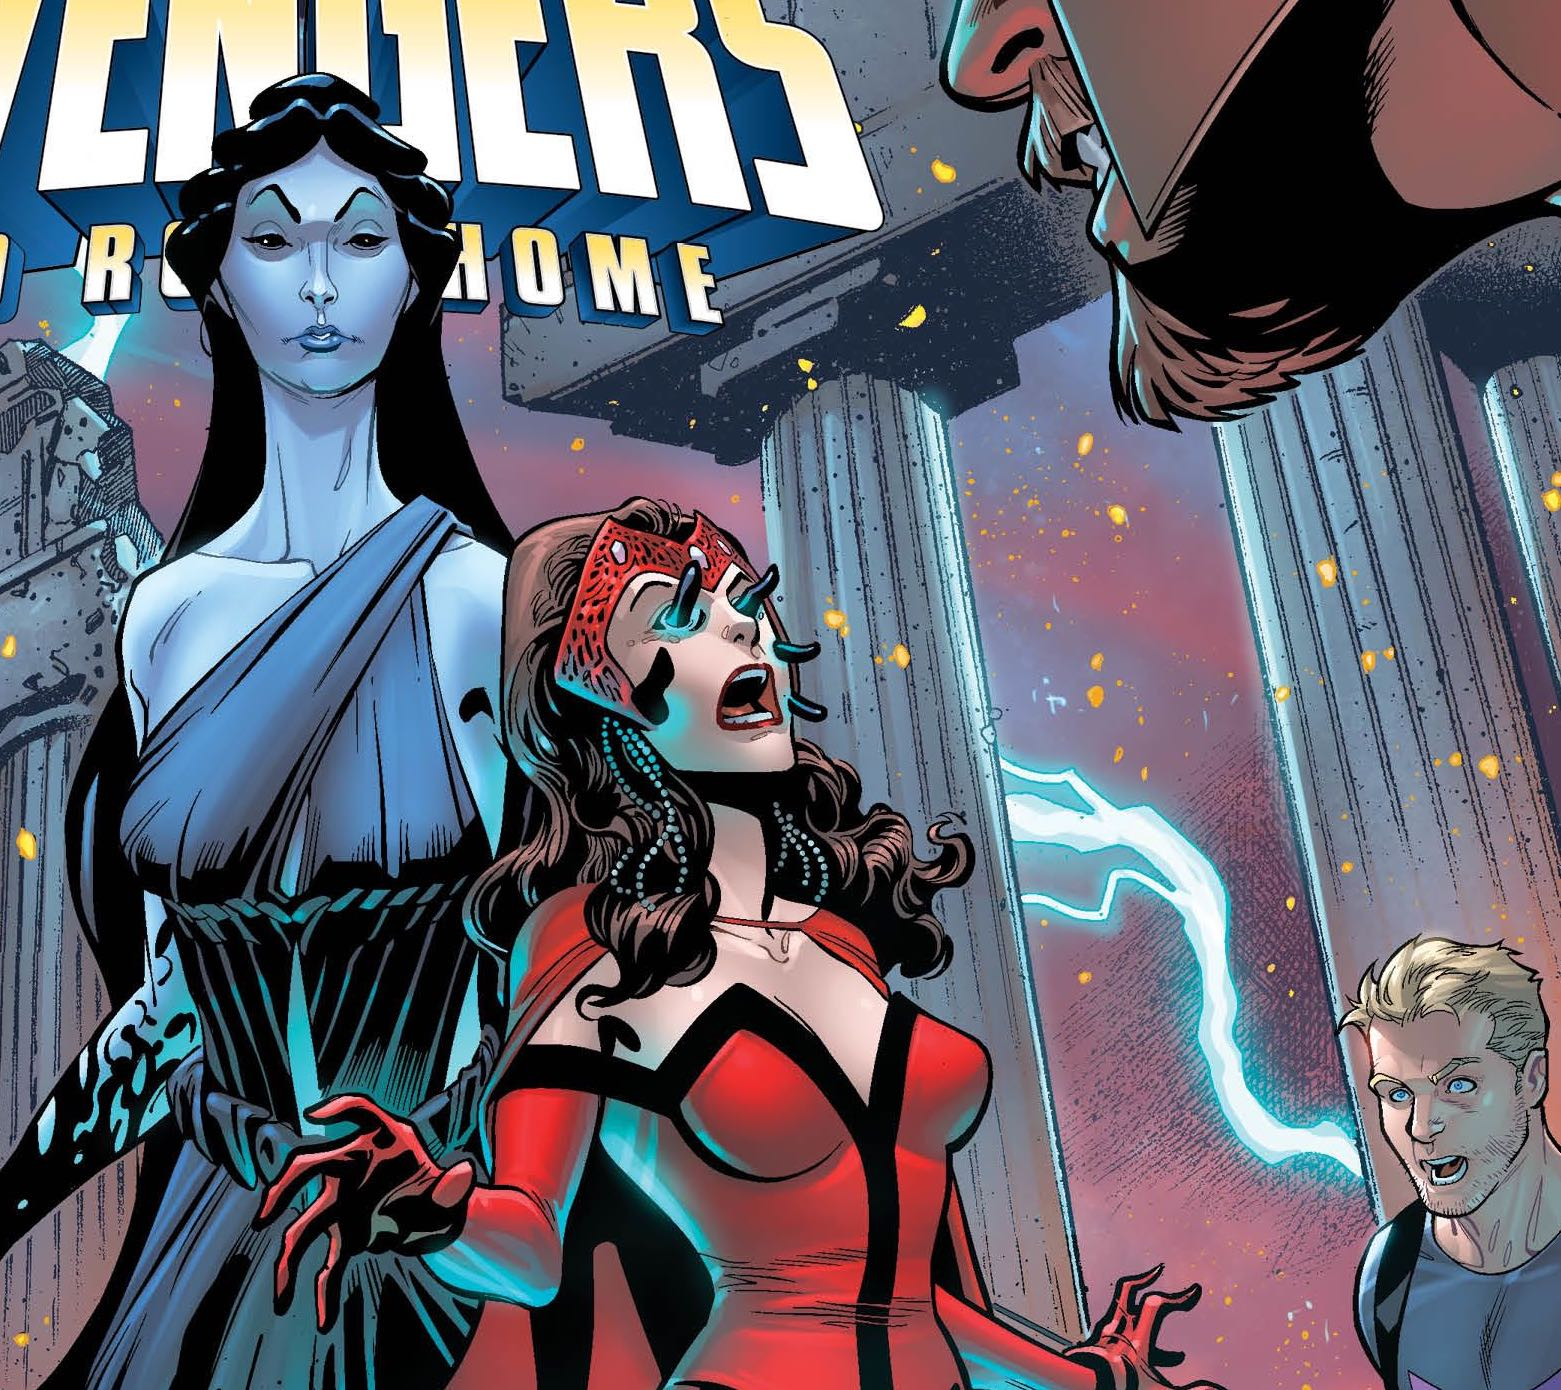 A major new hero to Marvel Comics makes their debut in 'Avengers: No Road Home' #5